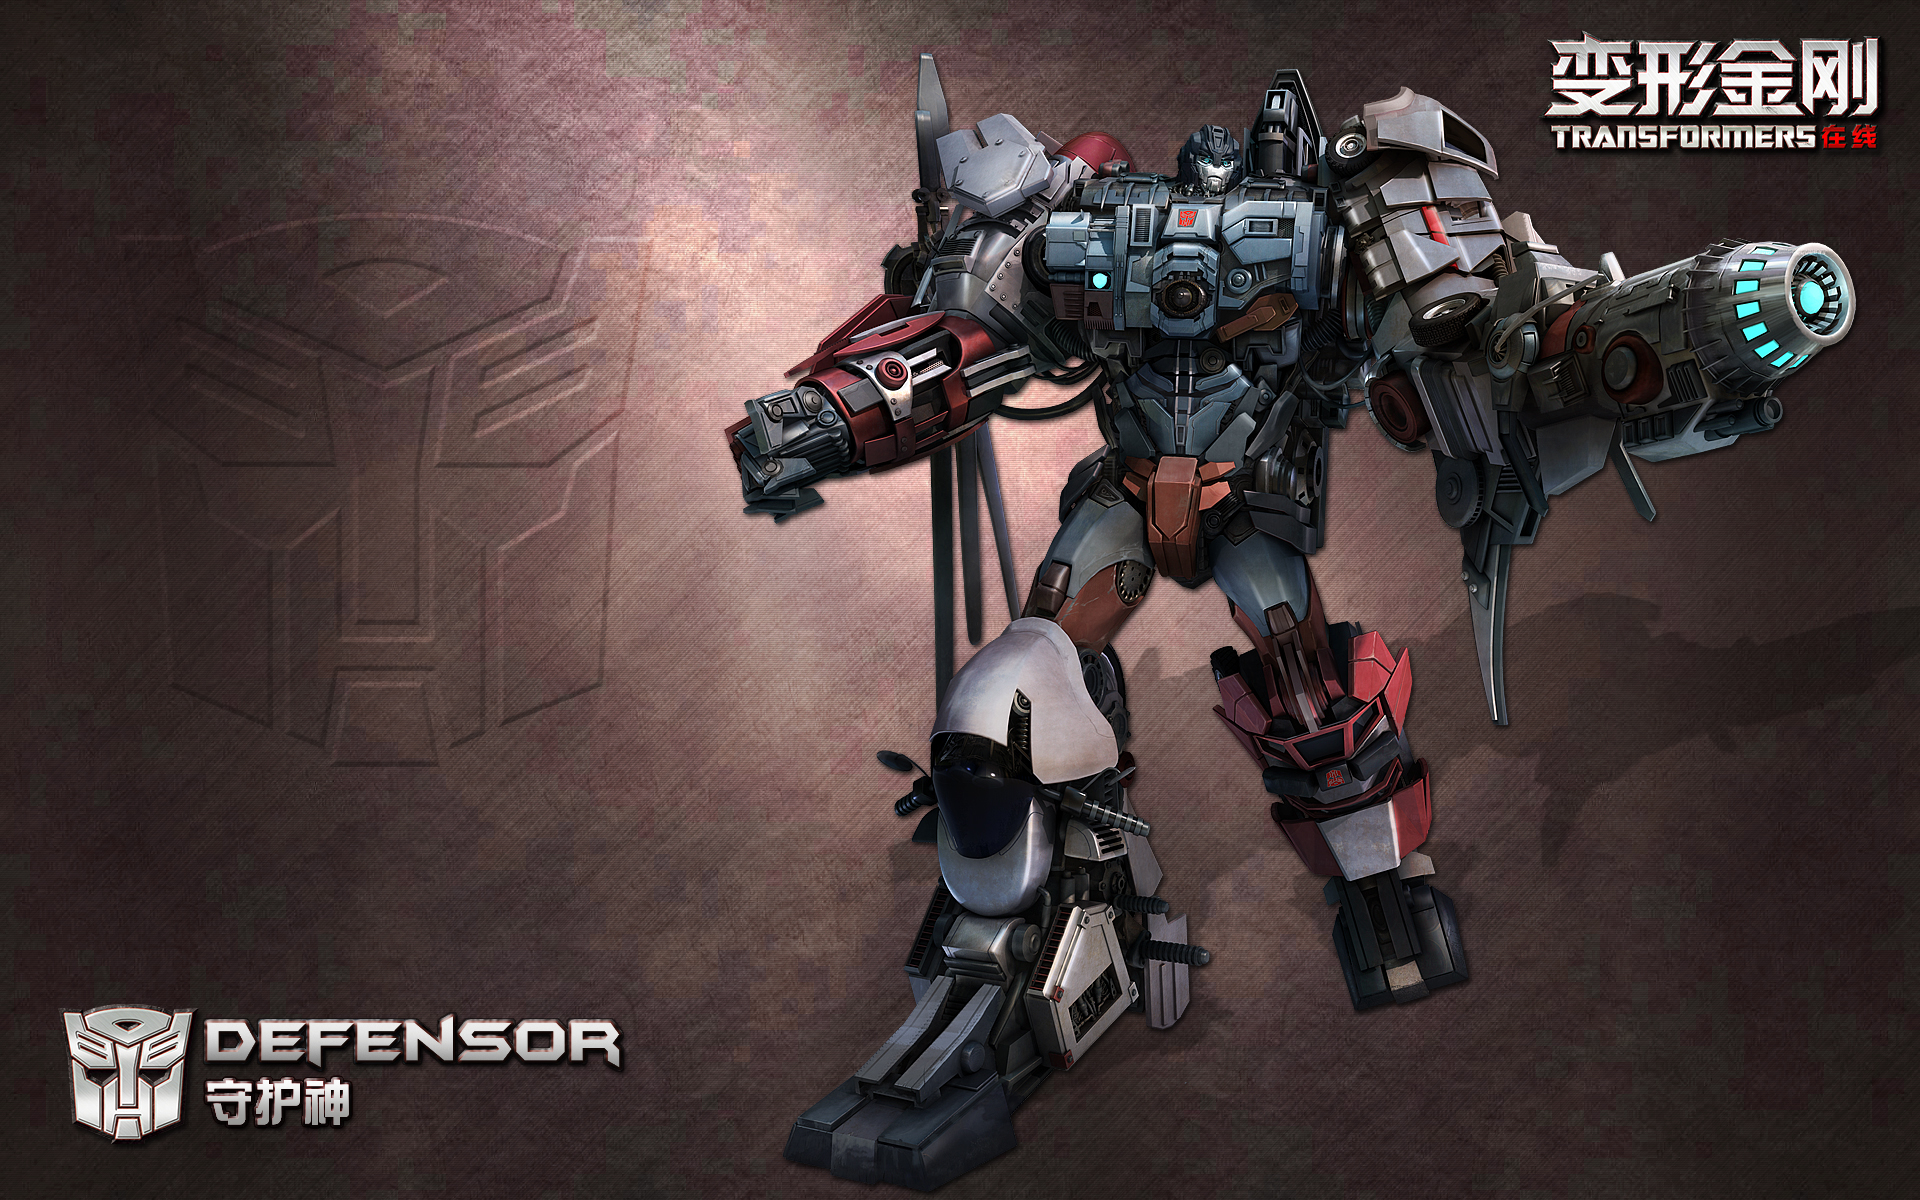 Transformers: Evolution MMORPG Details, Images & Gameplay Footage-mmo-defensor.jpg